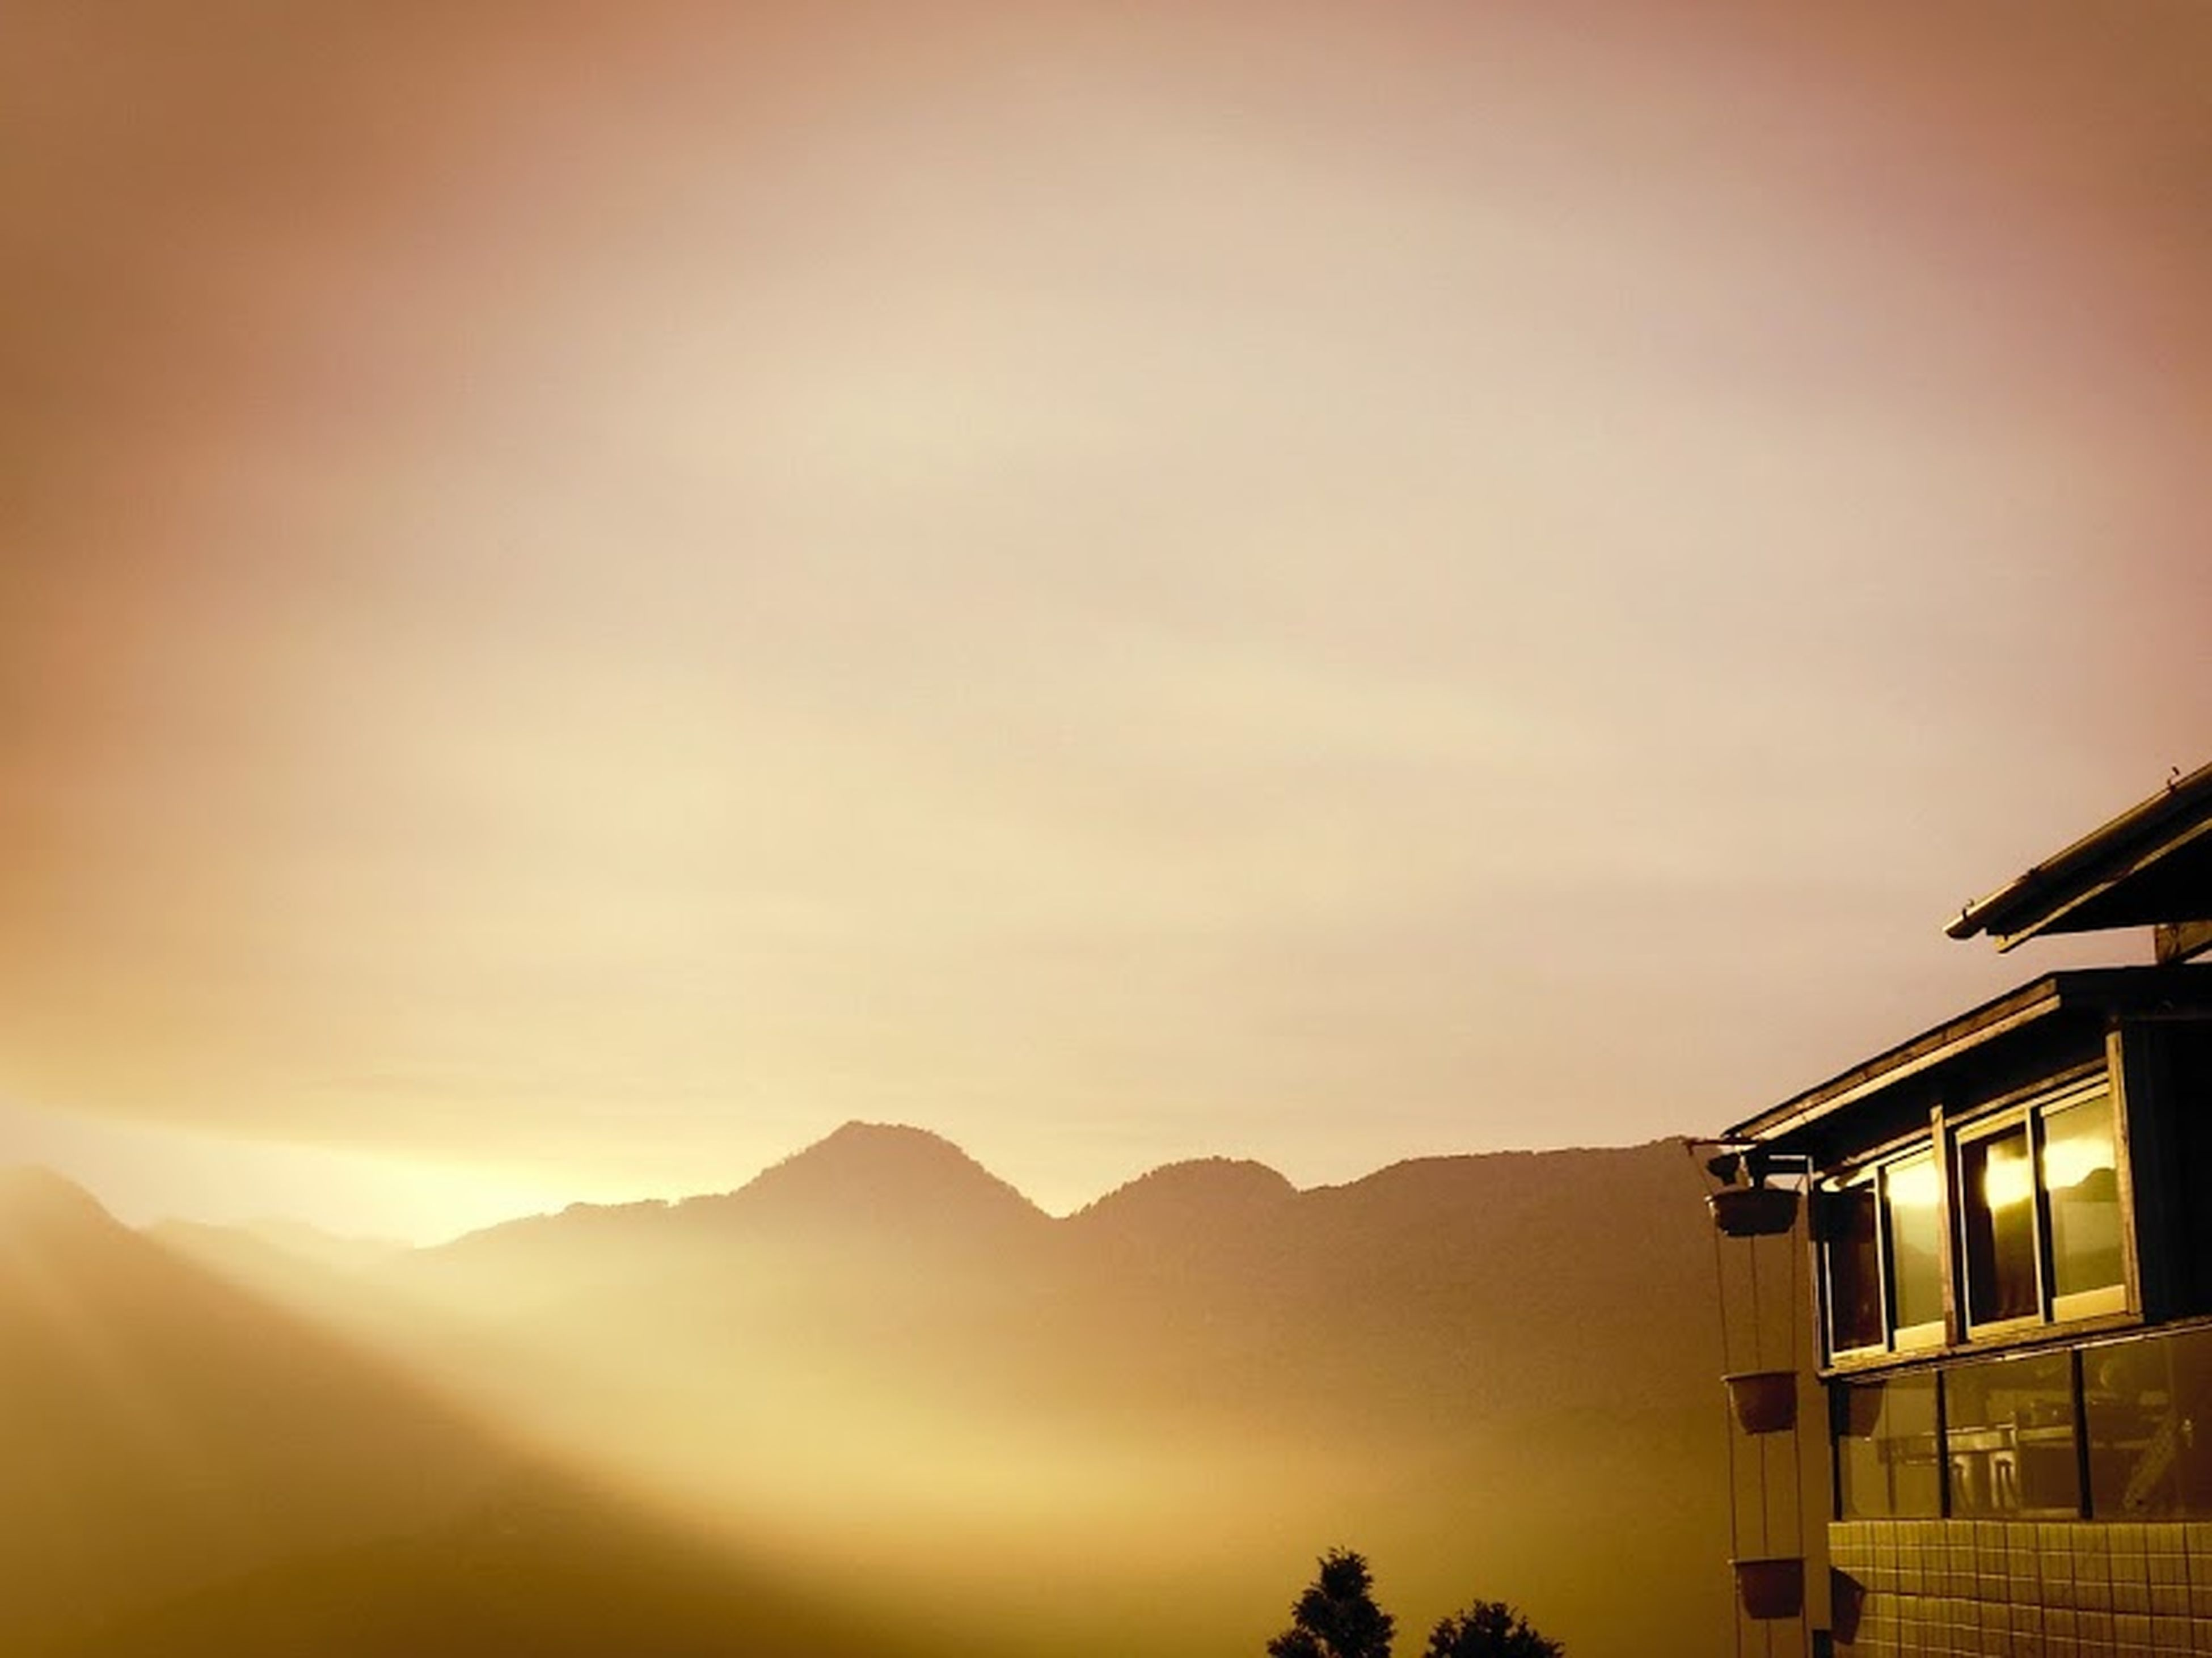 sunset, building exterior, mountain, architecture, built structure, house, sky, scenics, beauty in nature, silhouette, nature, tranquility, tranquil scene, mountain range, orange color, residential structure, low angle view, sunlight, copy space, outdoors